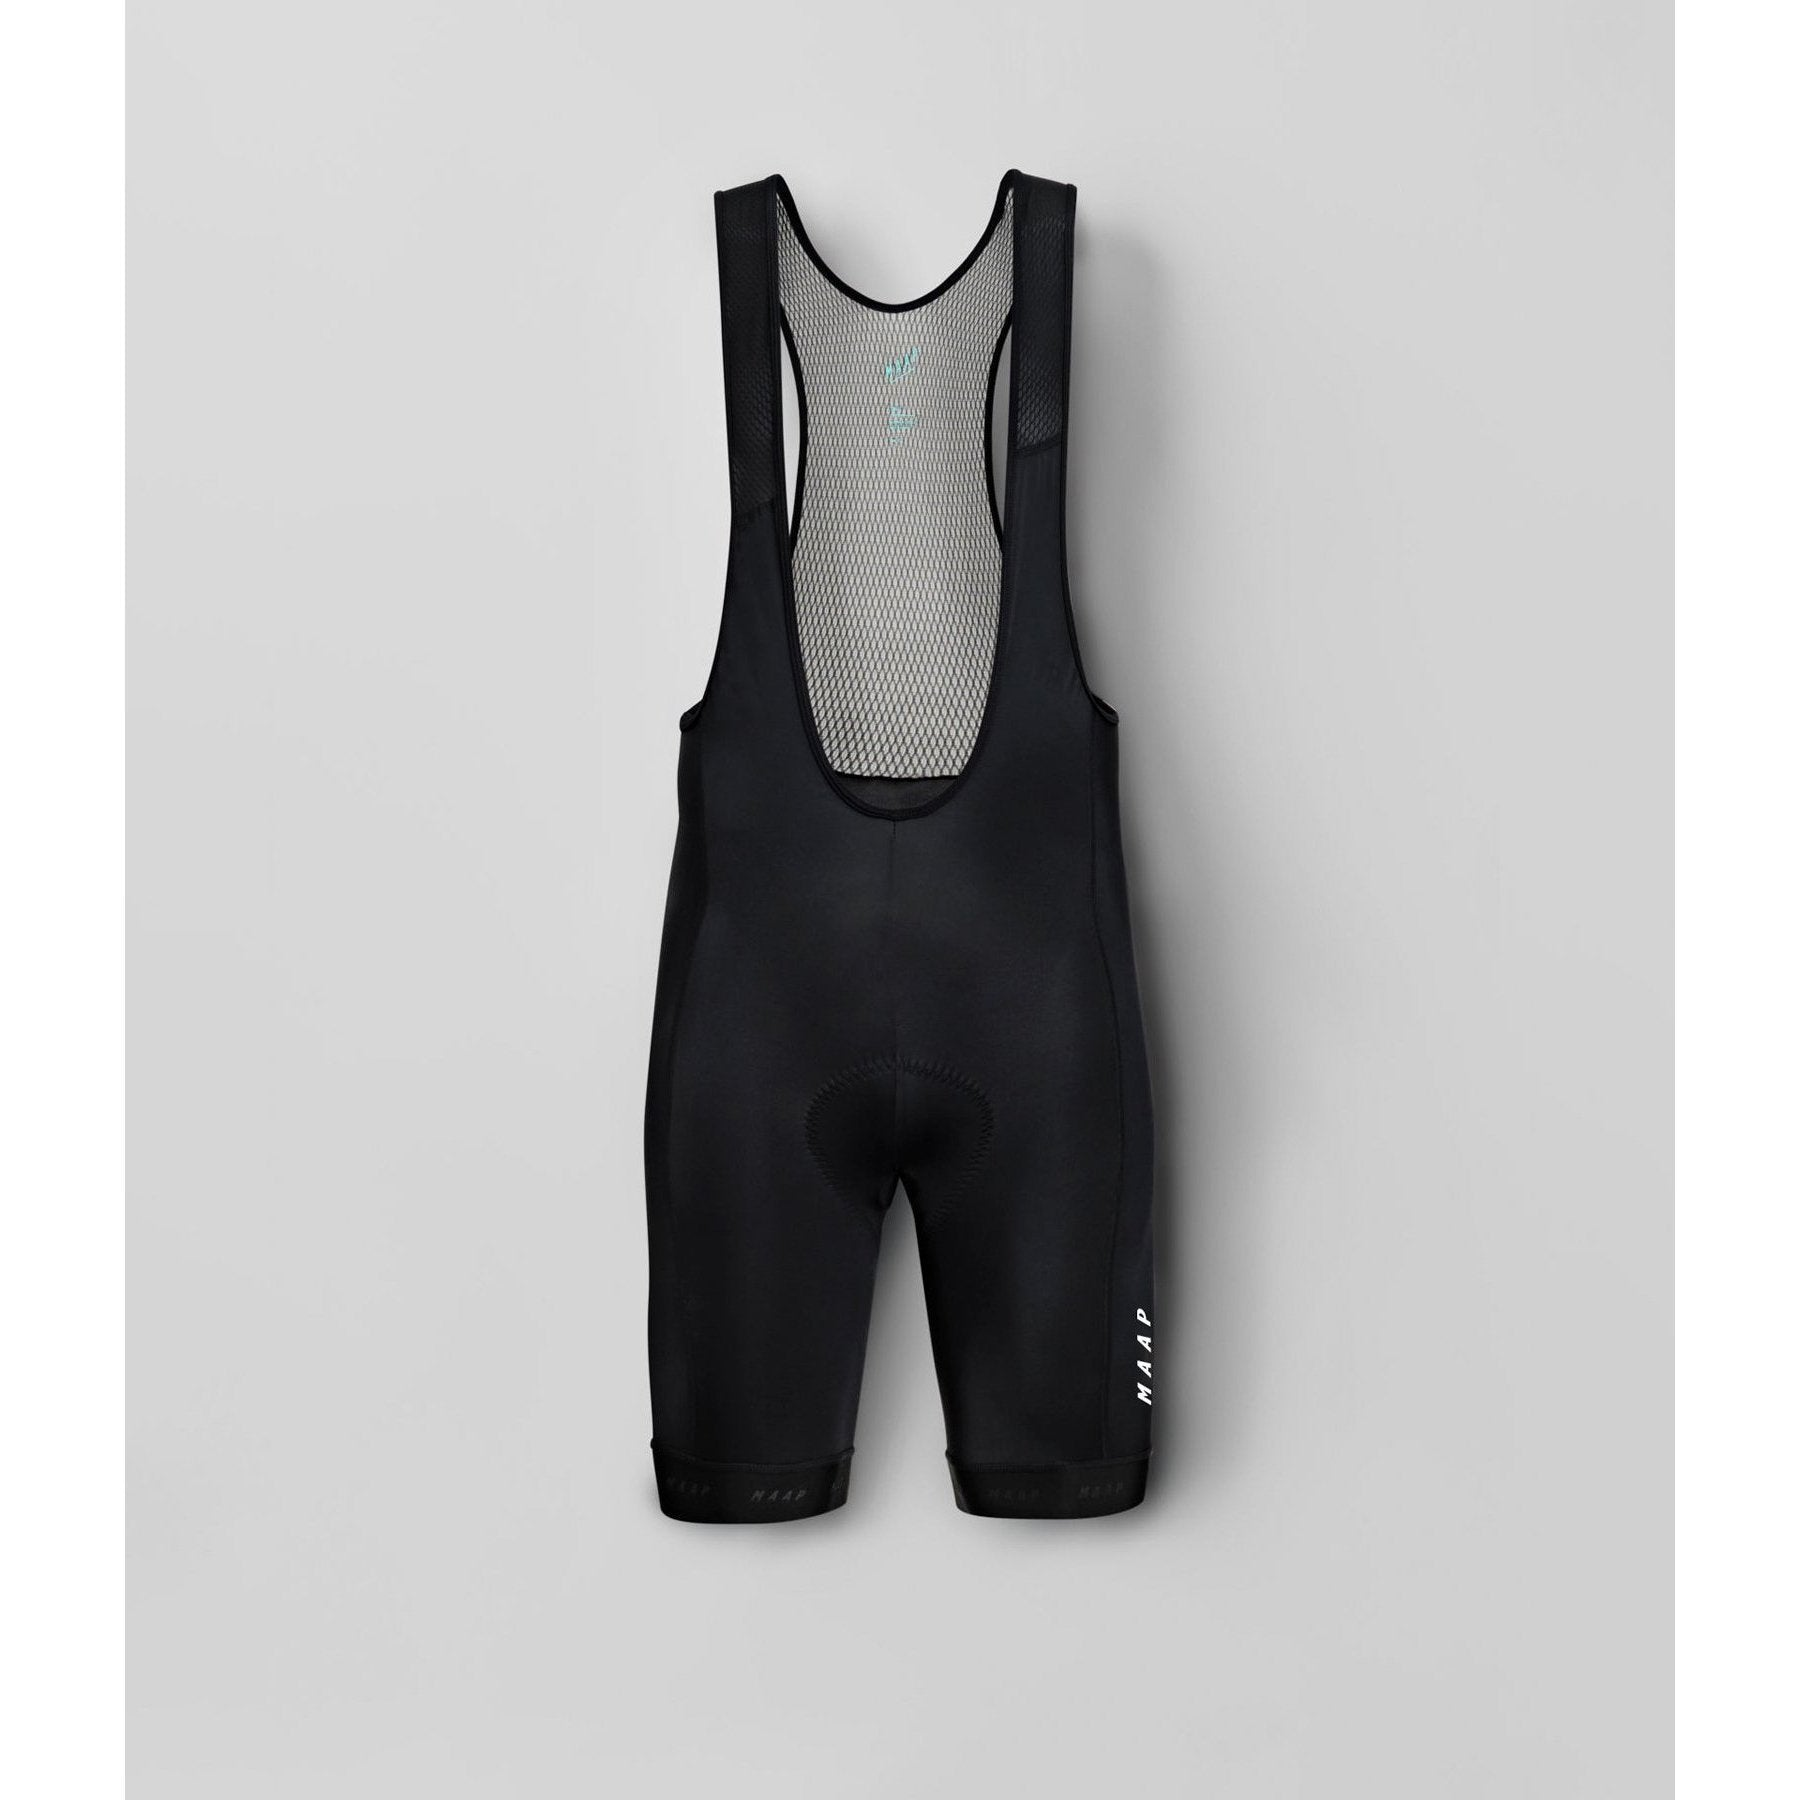 Training Bib Short - Black/White Bib Shorts MAAP XS